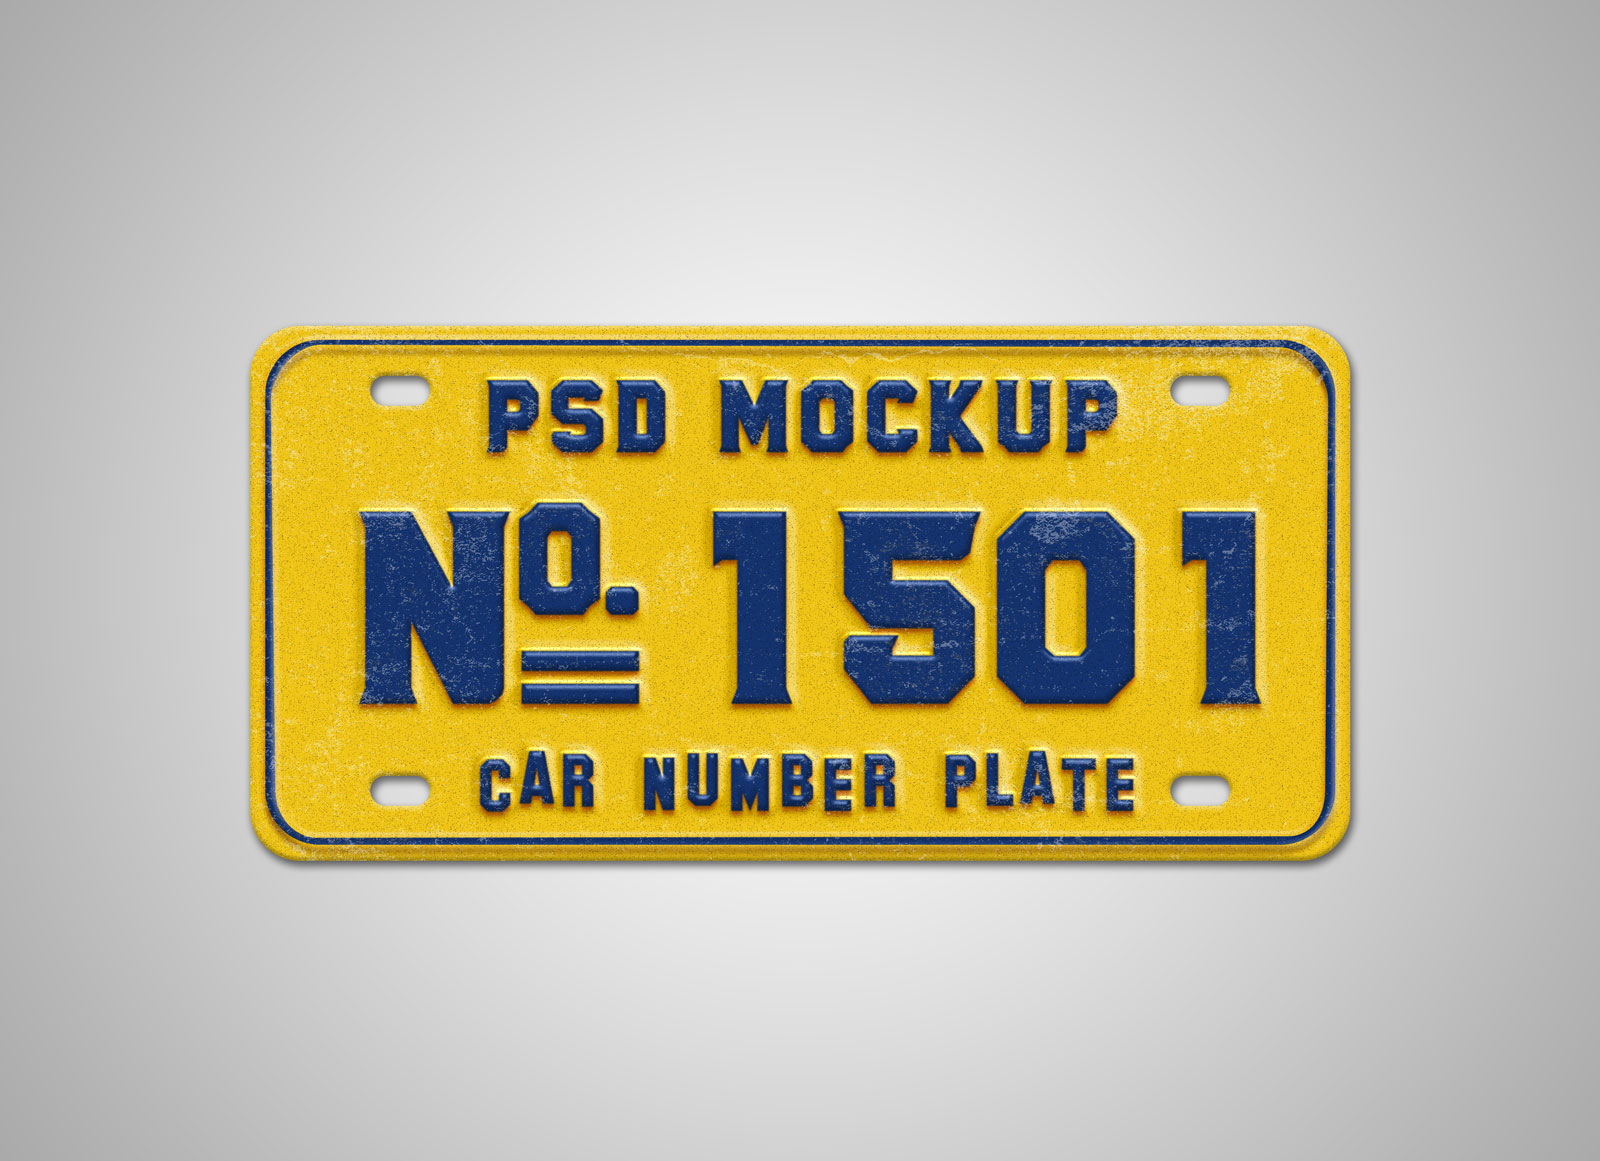 Free-Steel-Car-Number-Plate-mockup-PSD-3